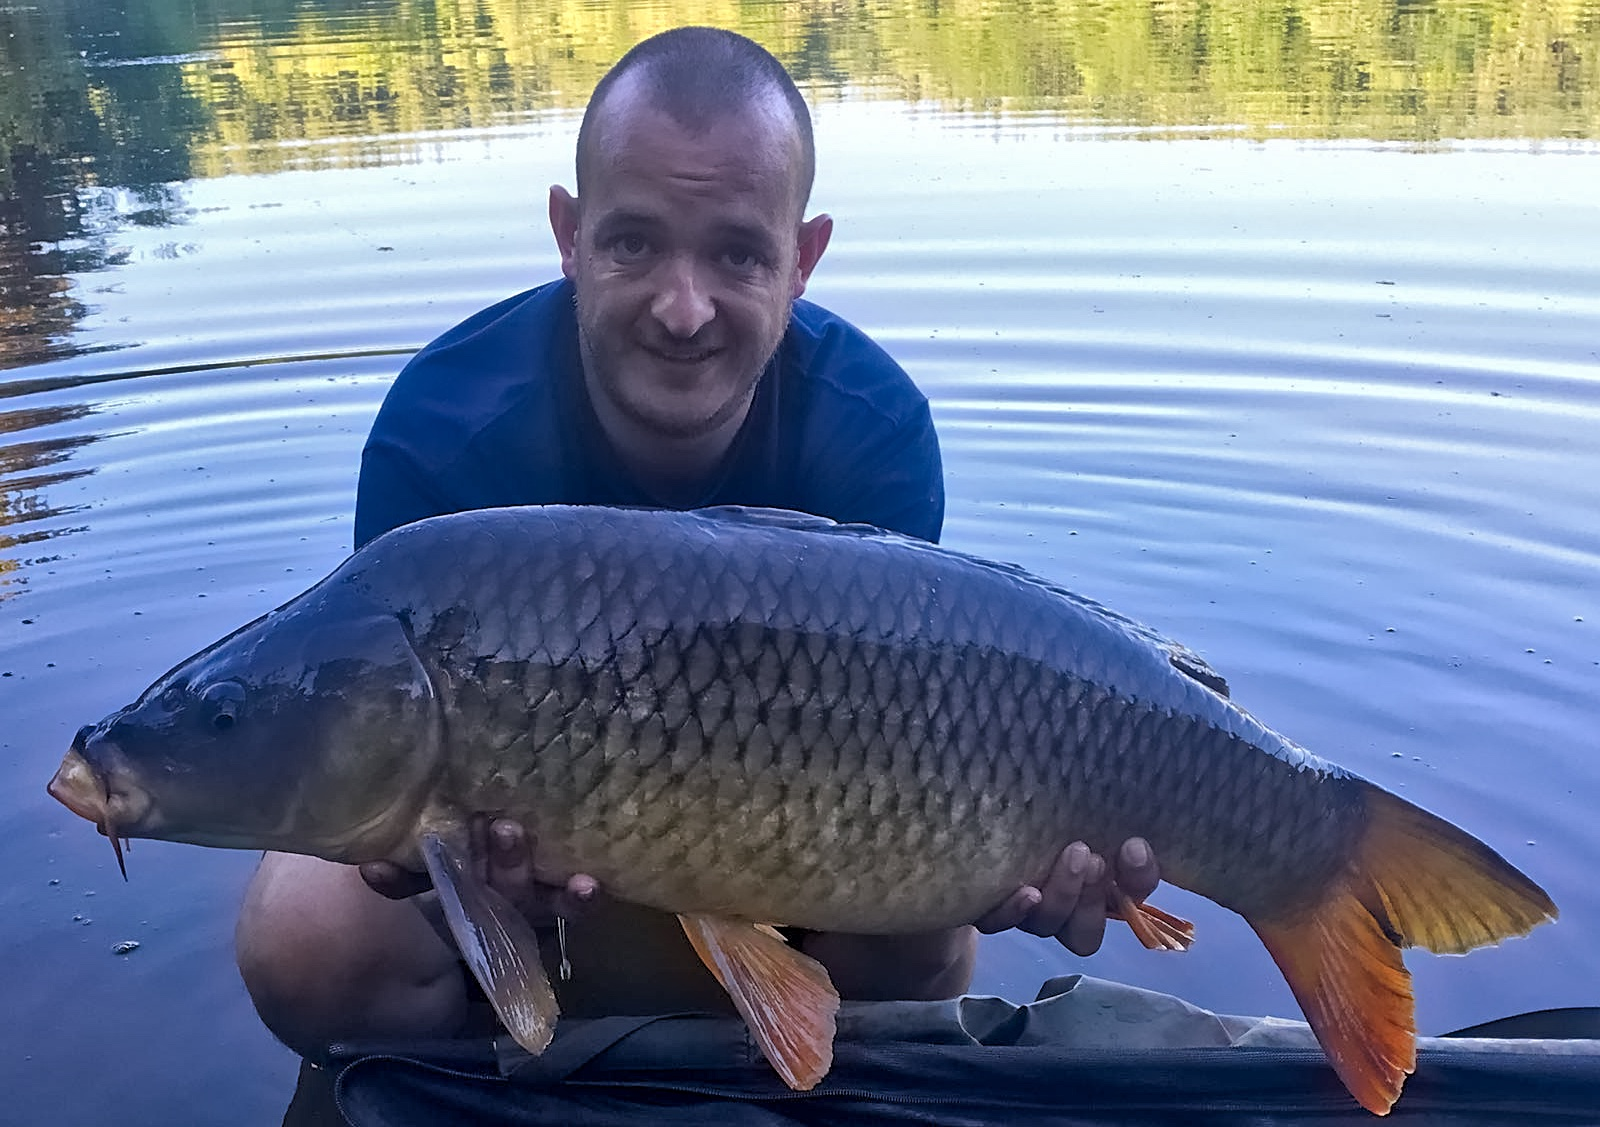 Forest View Carp Fishing Lake